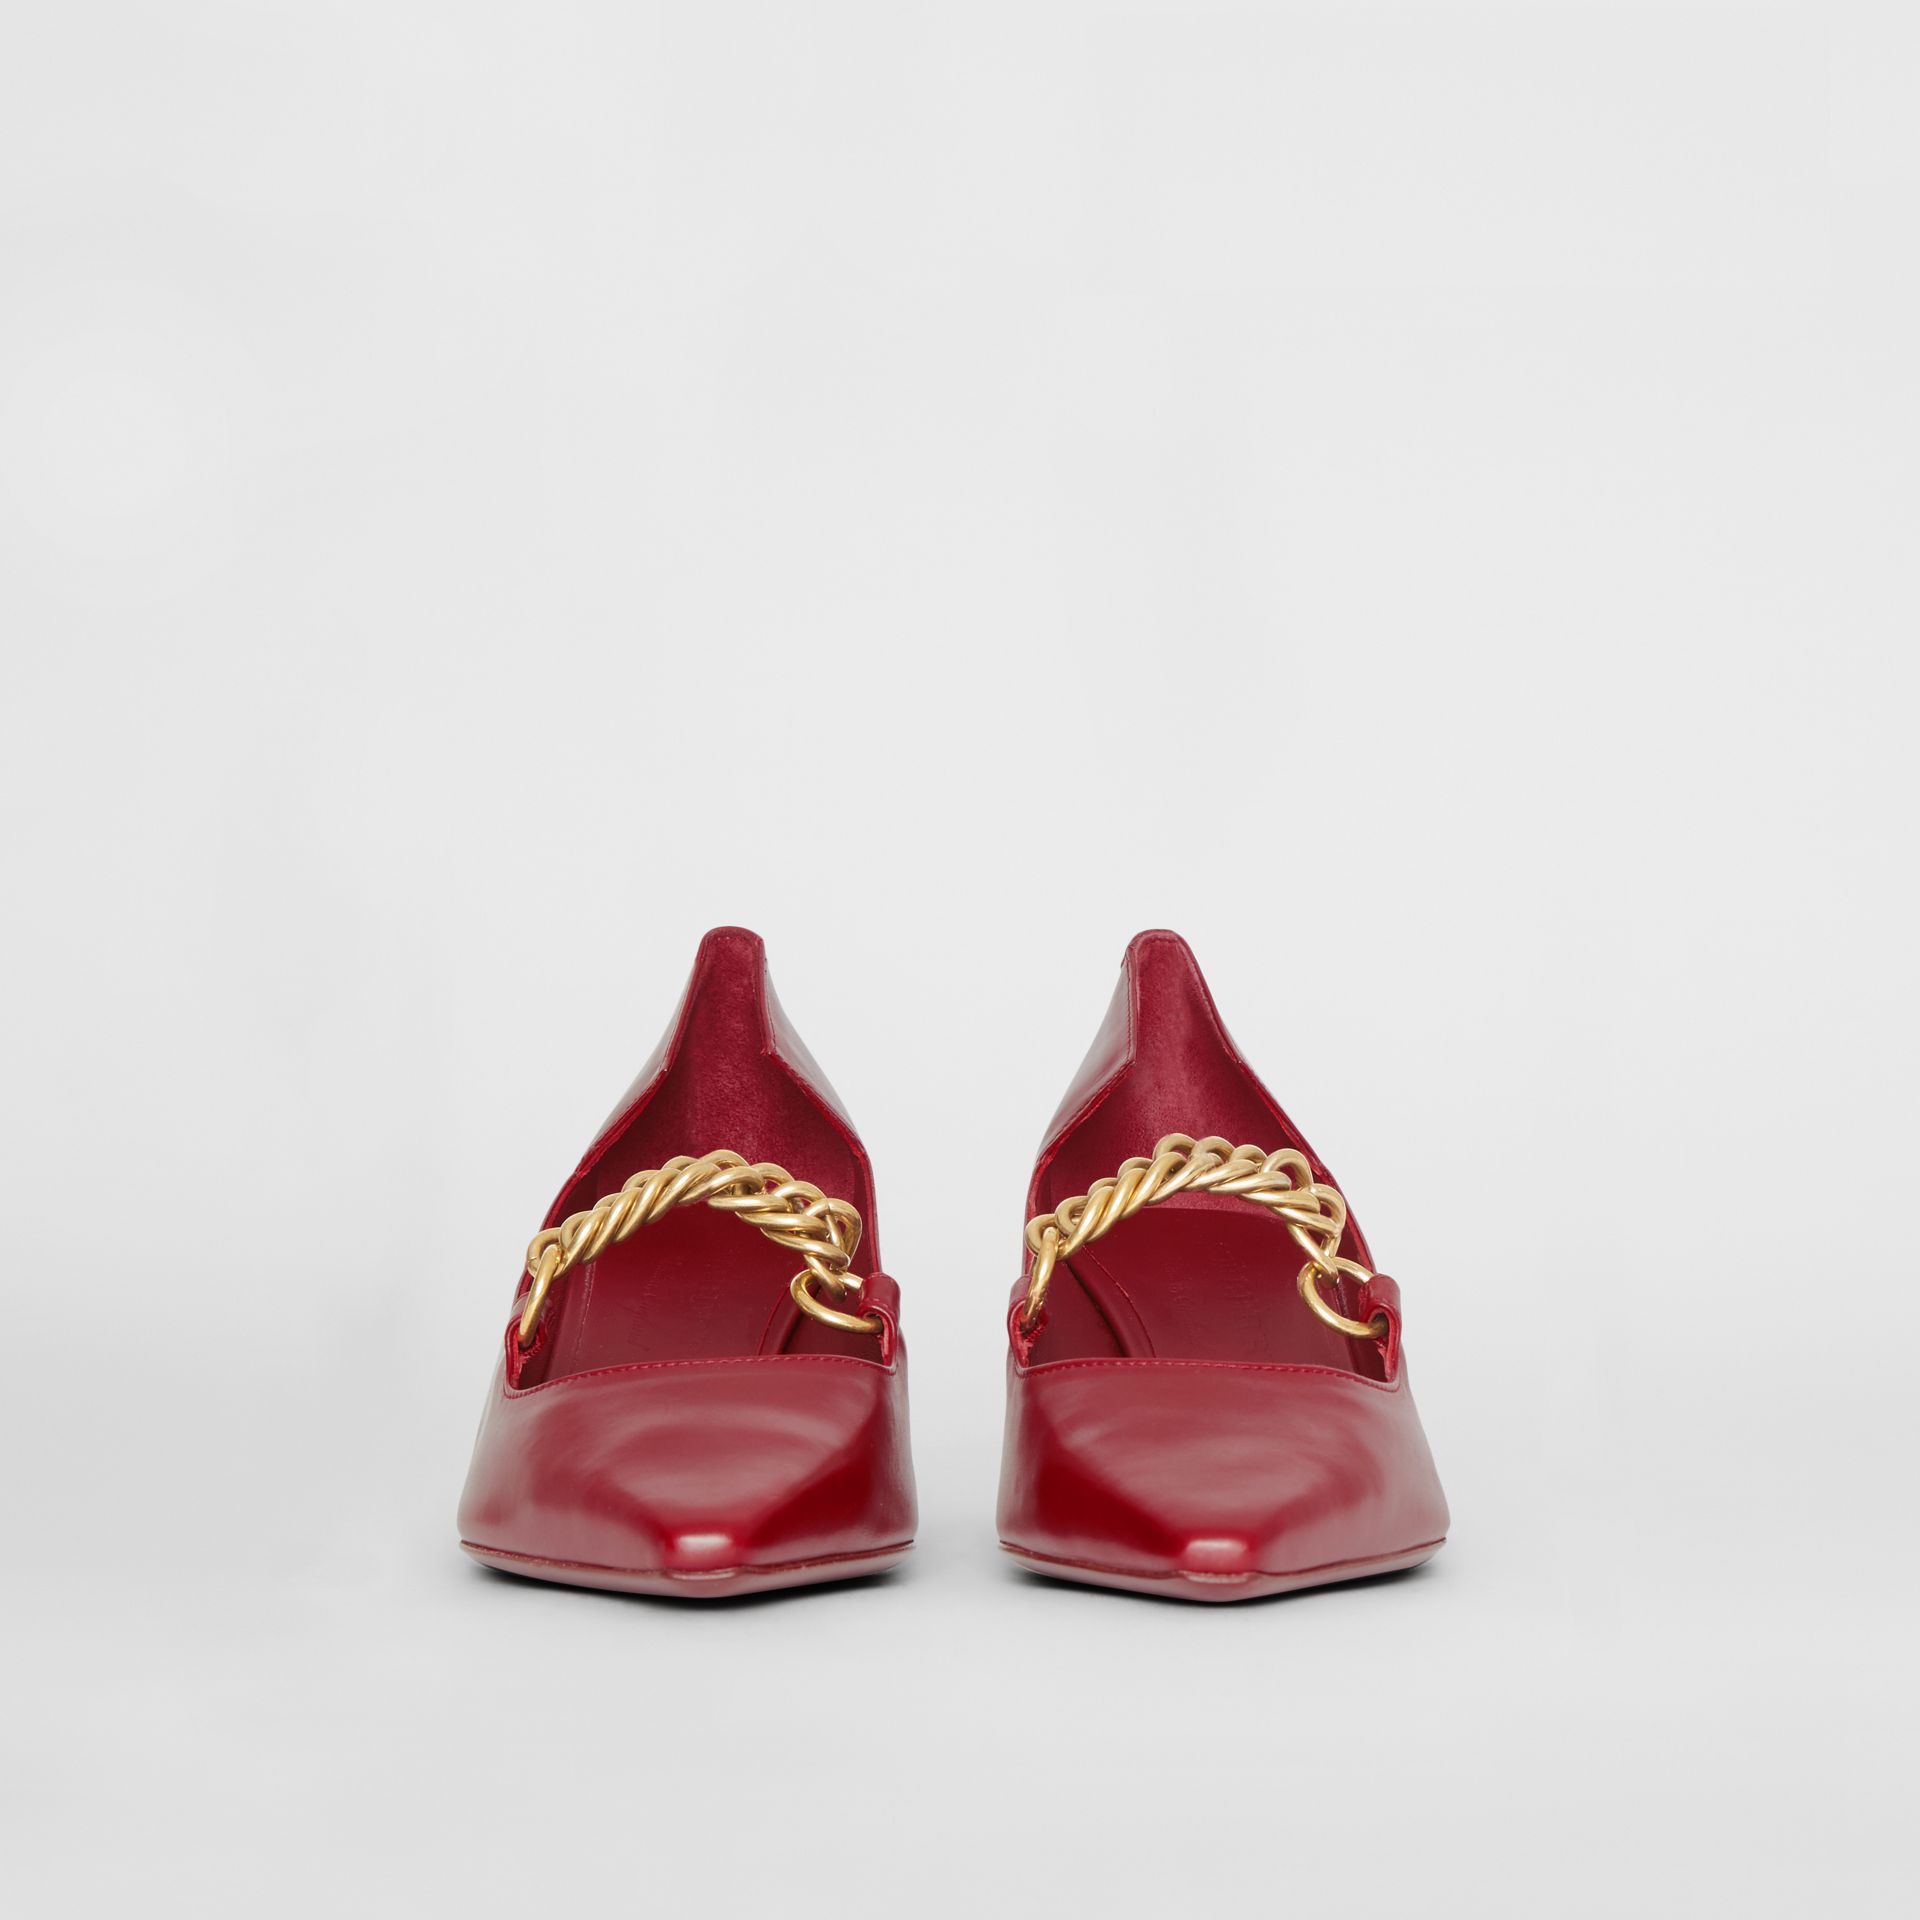 Link Detail Leather Point-toe Pump in Claret - Women | Burberry United States - gallery image 3